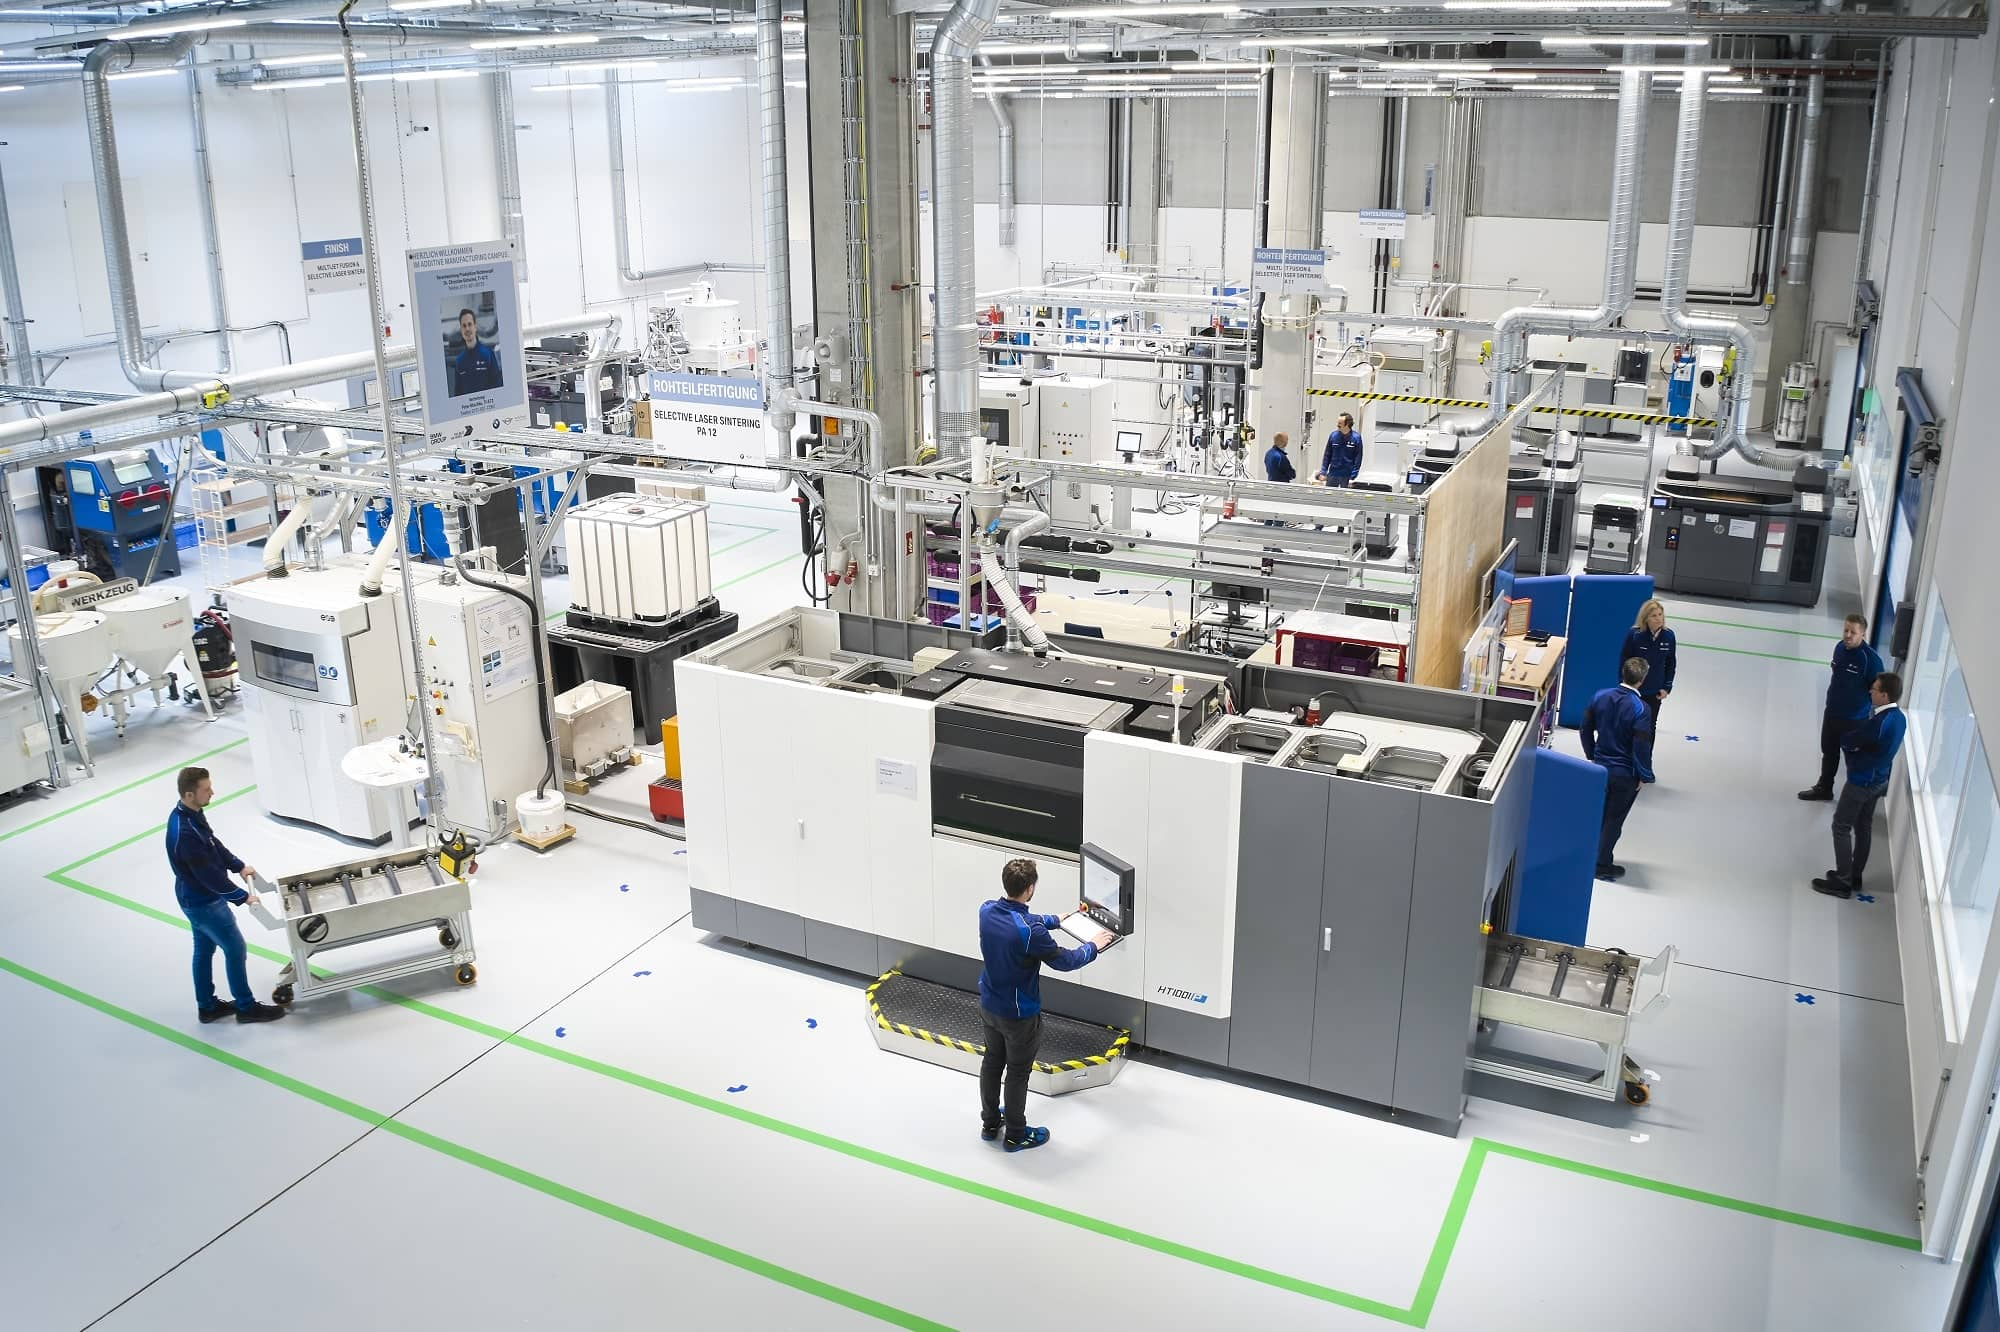 Additive Manufacturing Campus